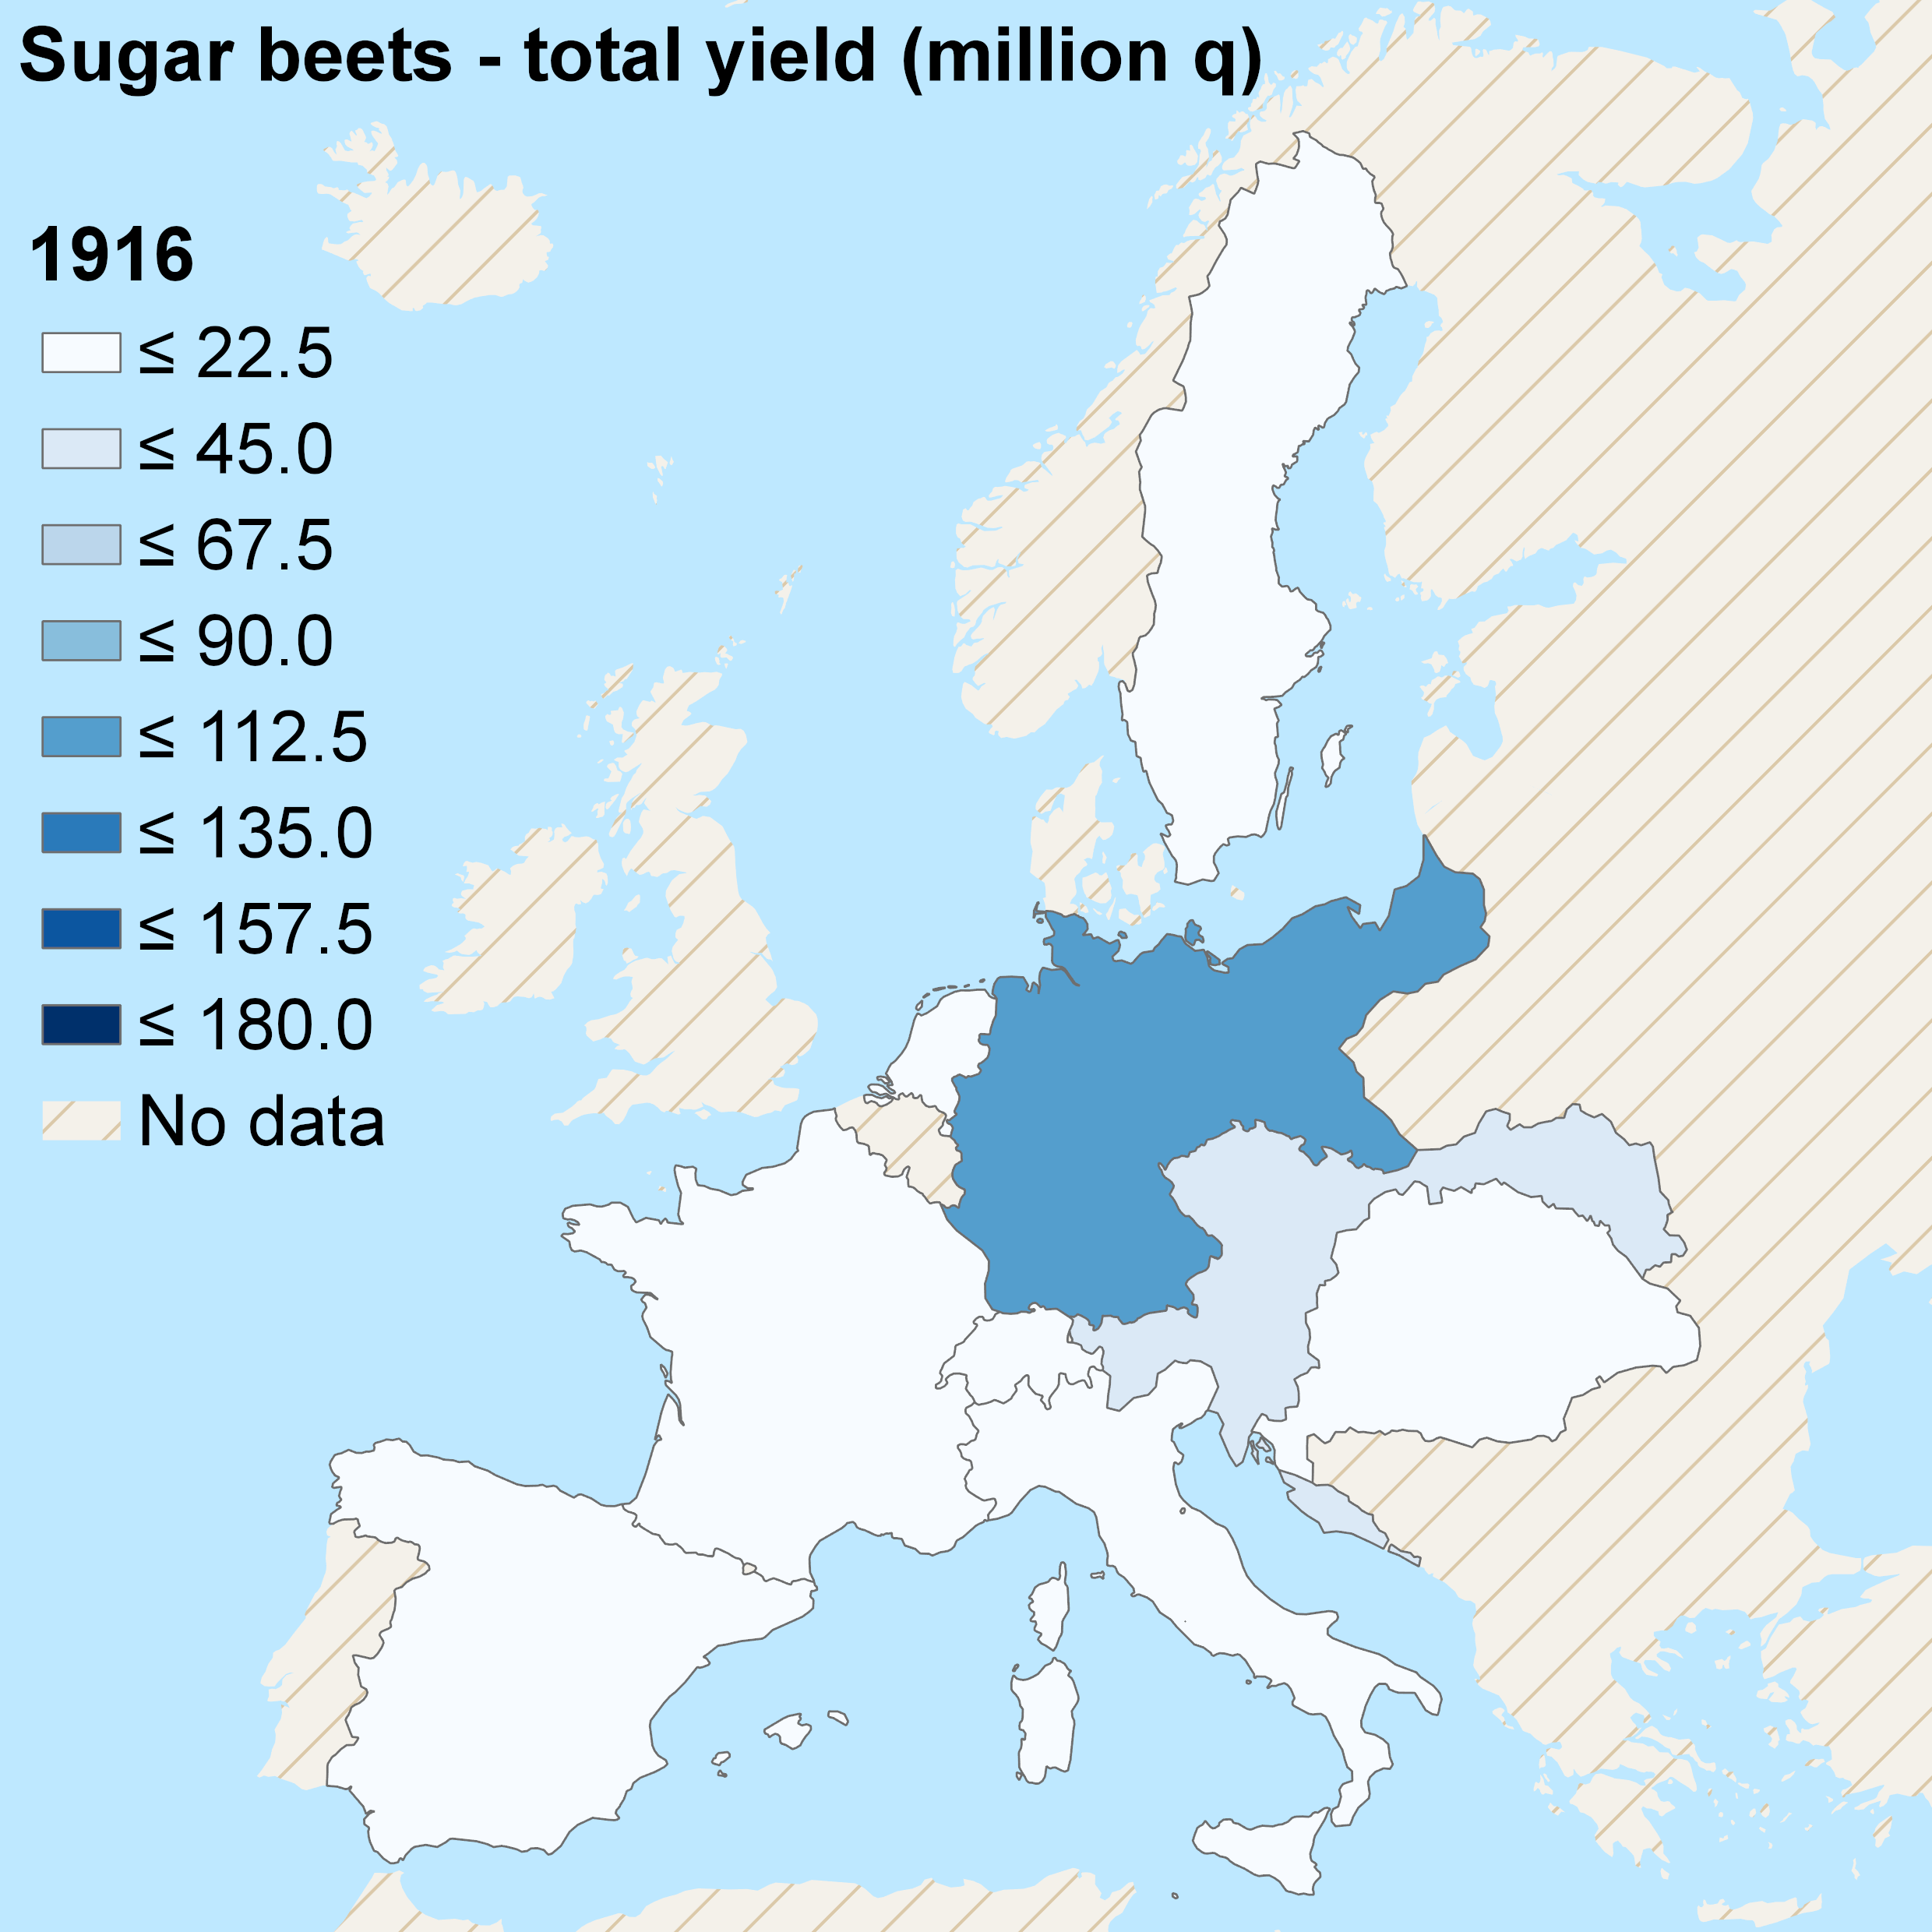 sugarbeets-total-1916